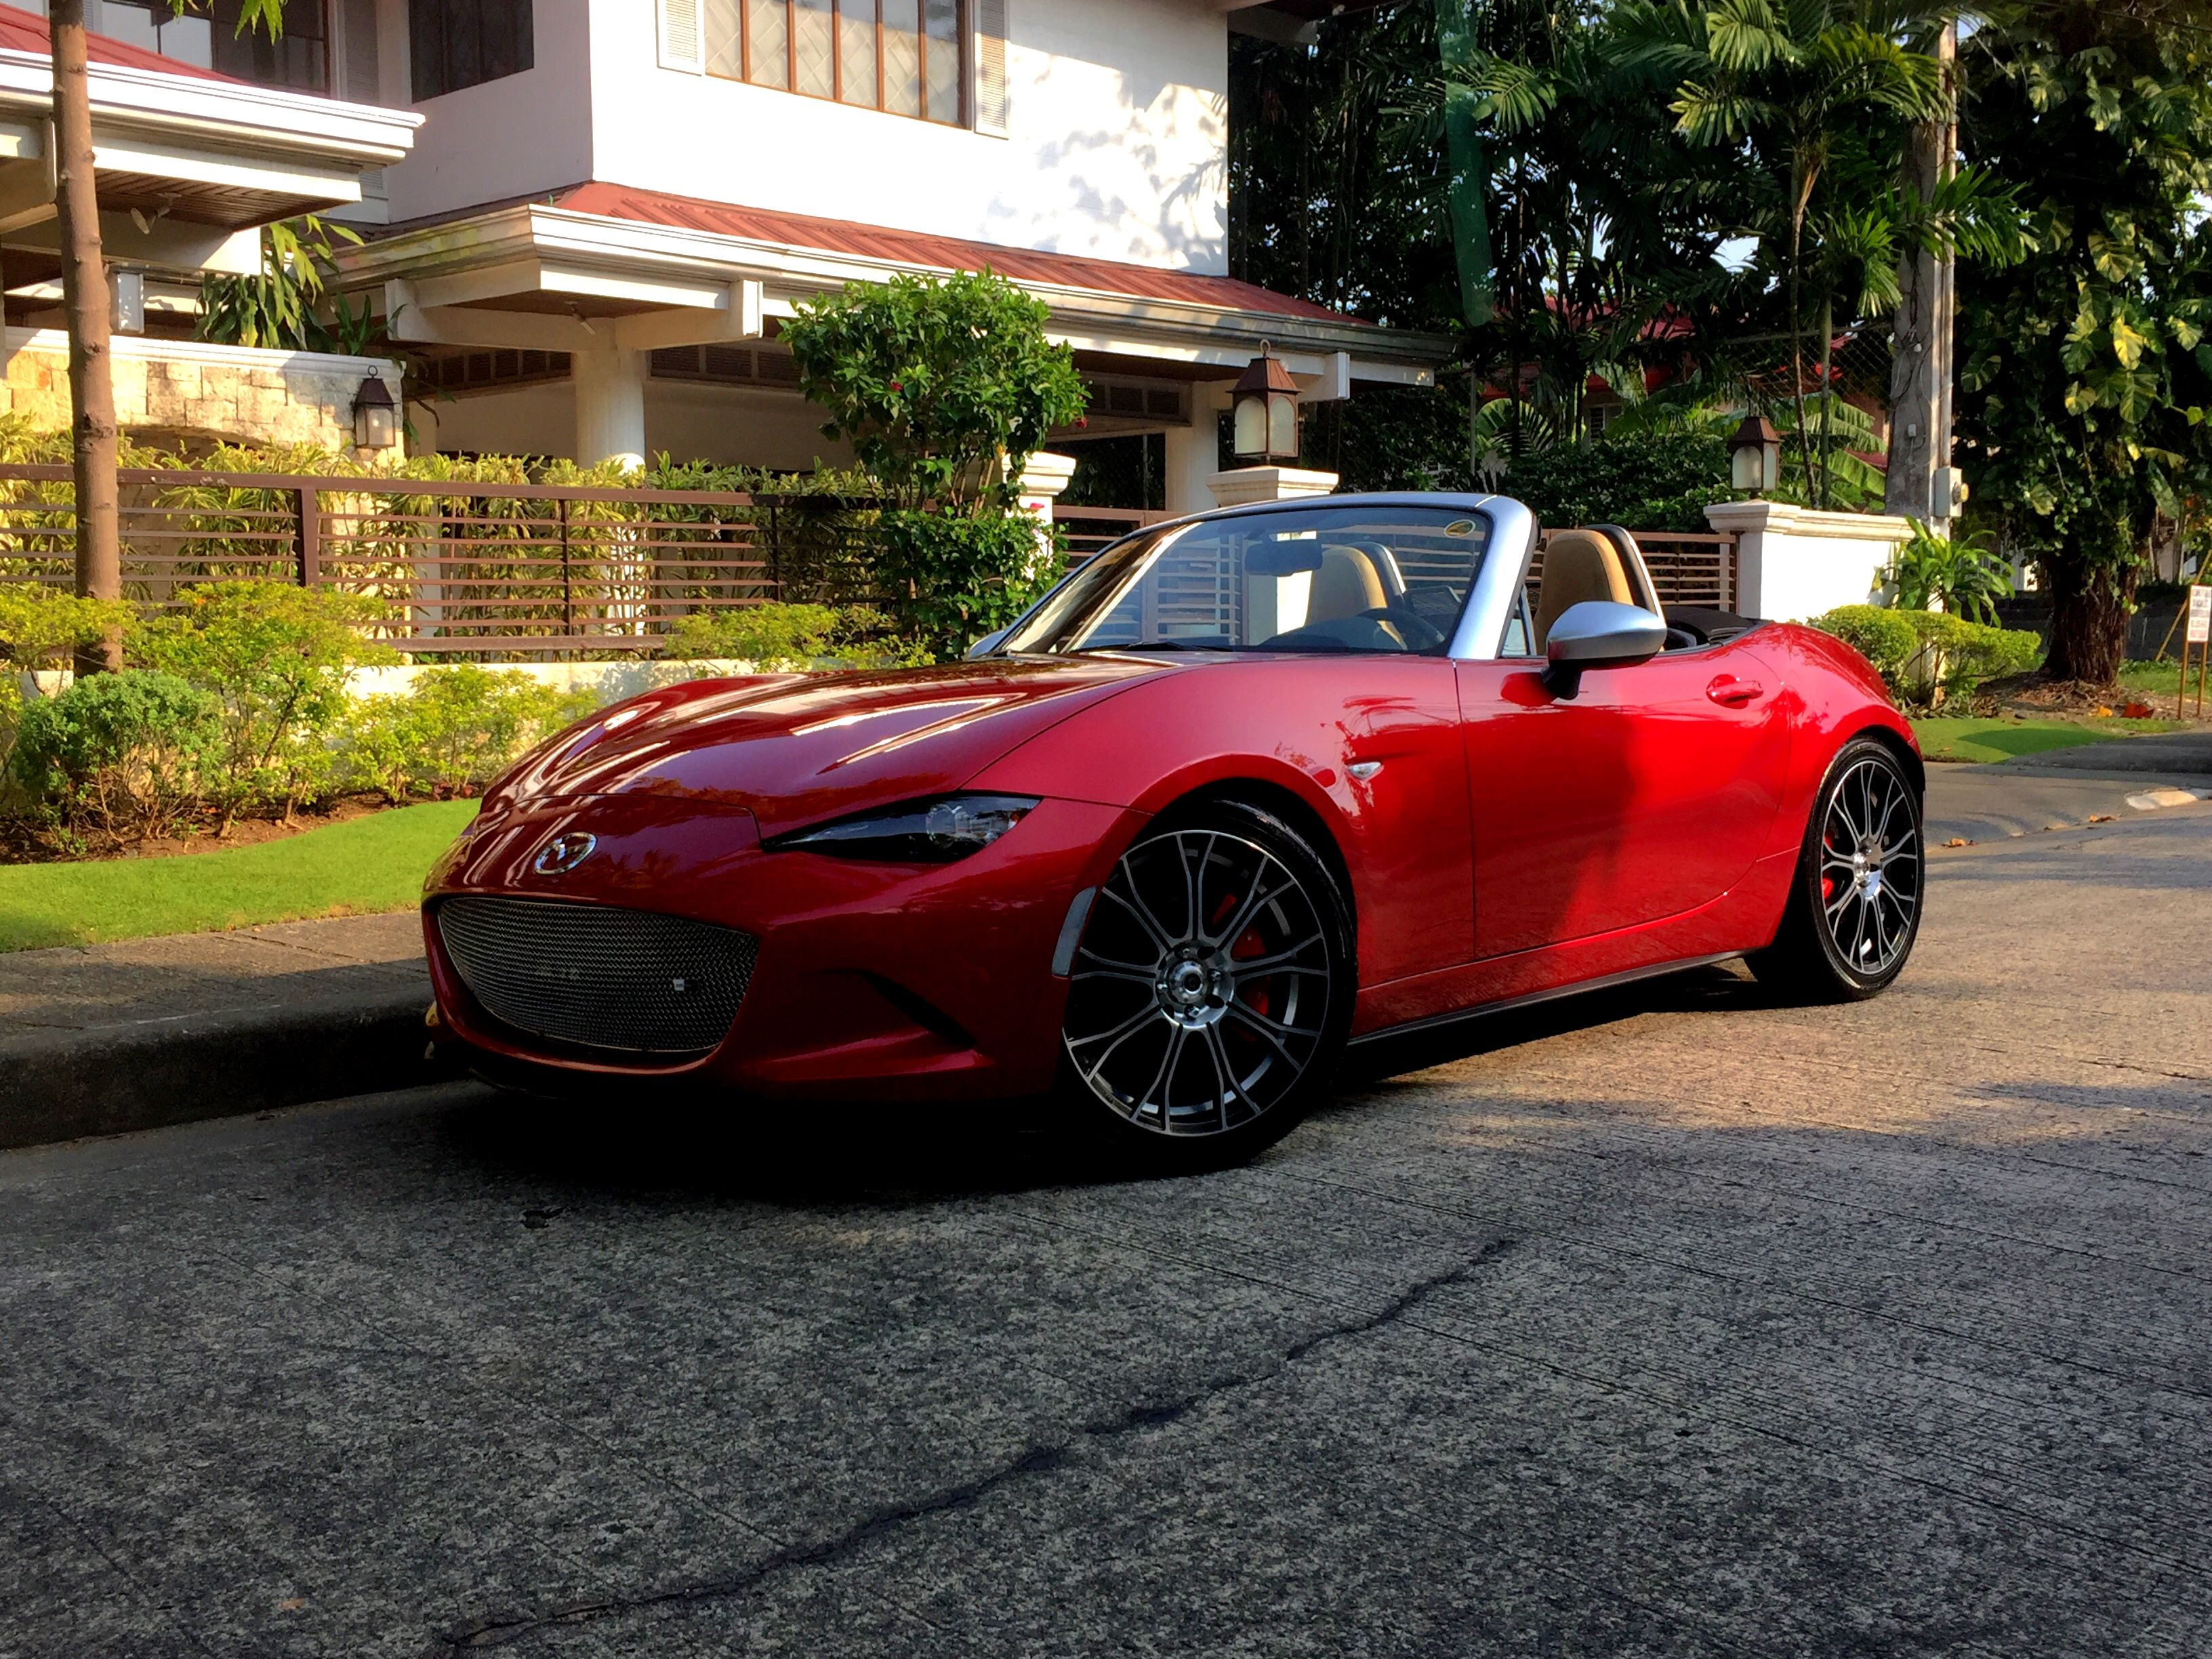 2017 Mazda MX 5 Miata RF Launch Edition Limited To Just 1,000 Units! | Cars  And Motorcycles | Pinterest | Mazda Mx, Mazda And Cars